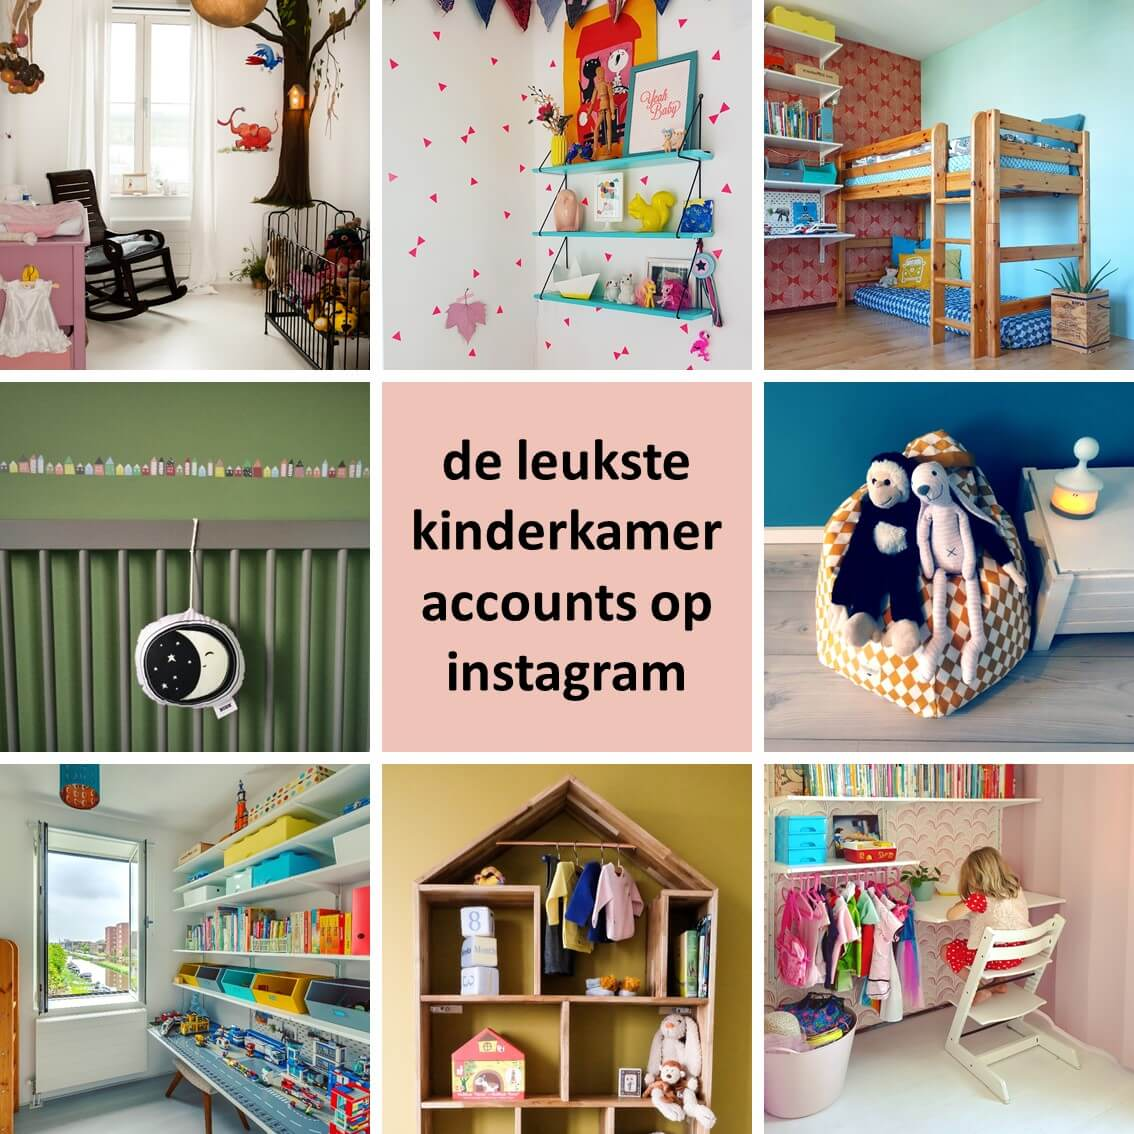 De leukste kinderkamer accounts op Instagram